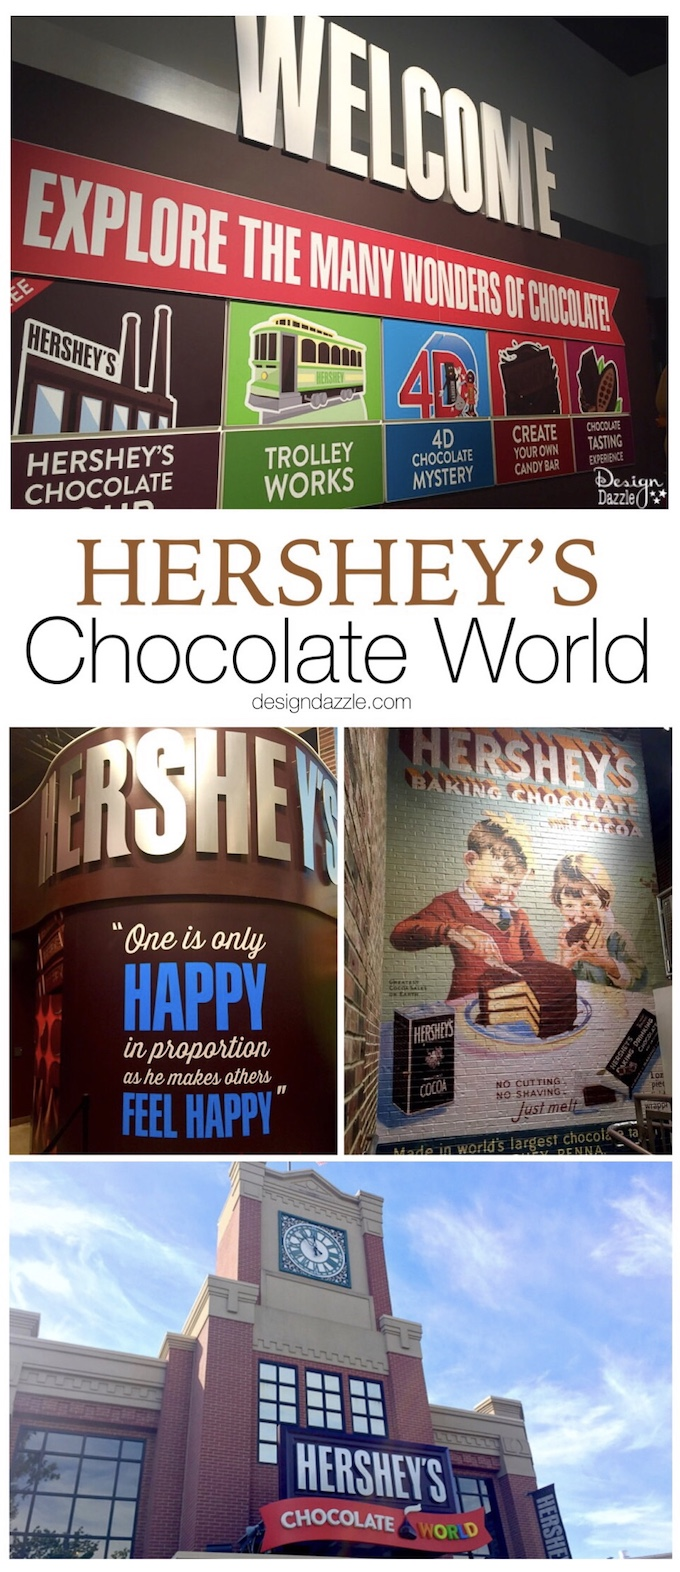 We made a stop in the town of Hershey, Pennsylvania. After visiting Hershey's Chocolate World, I'm convinced this is definitely the sweetest place on earth! | Design Dazzle